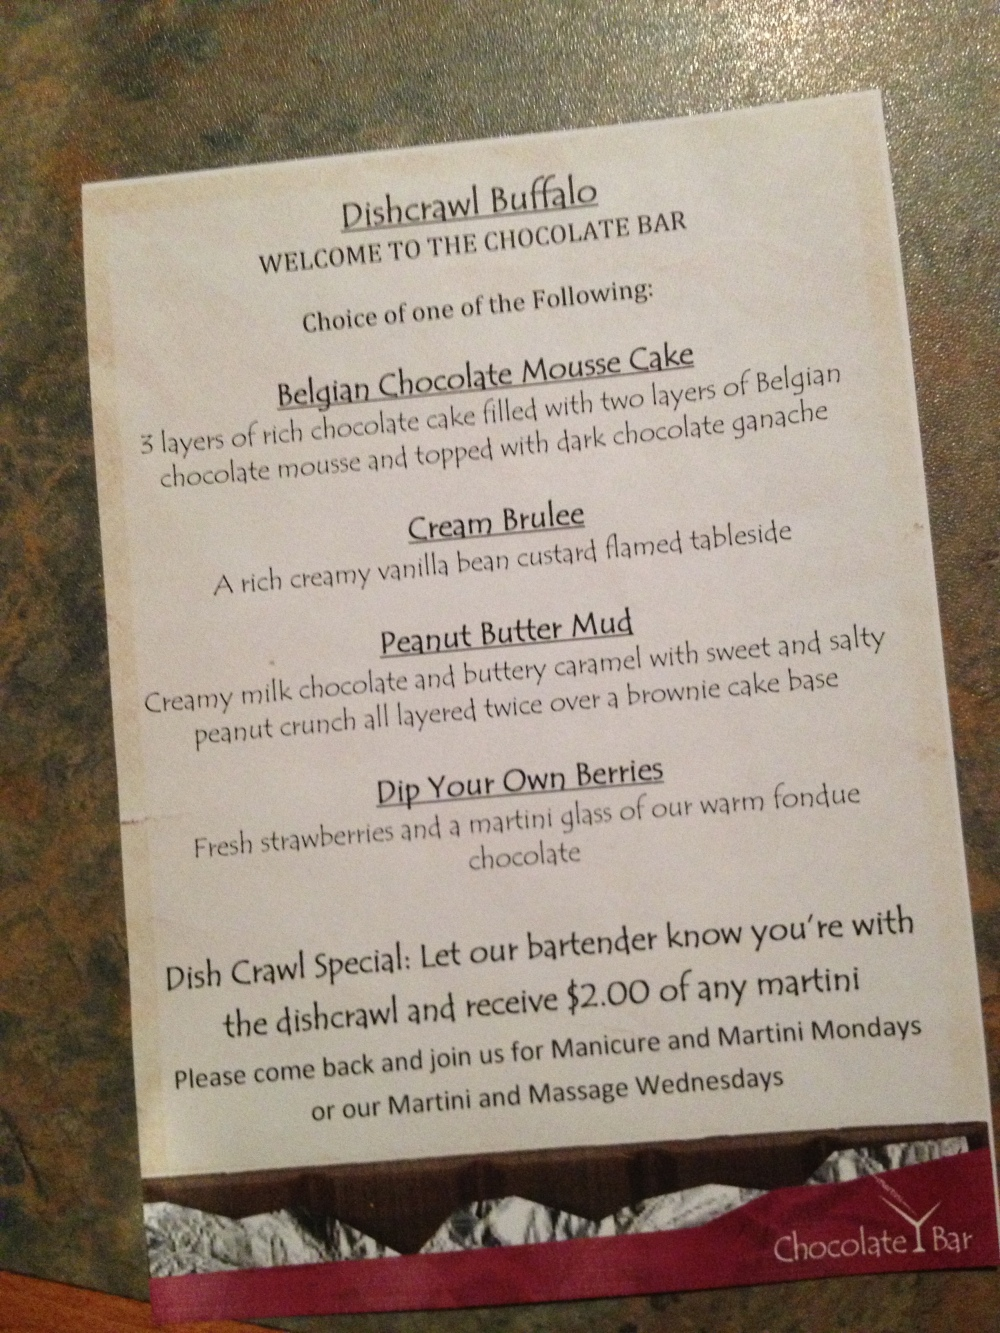 the Chocolate Bar special menu for Dishcrawl Buffalo!